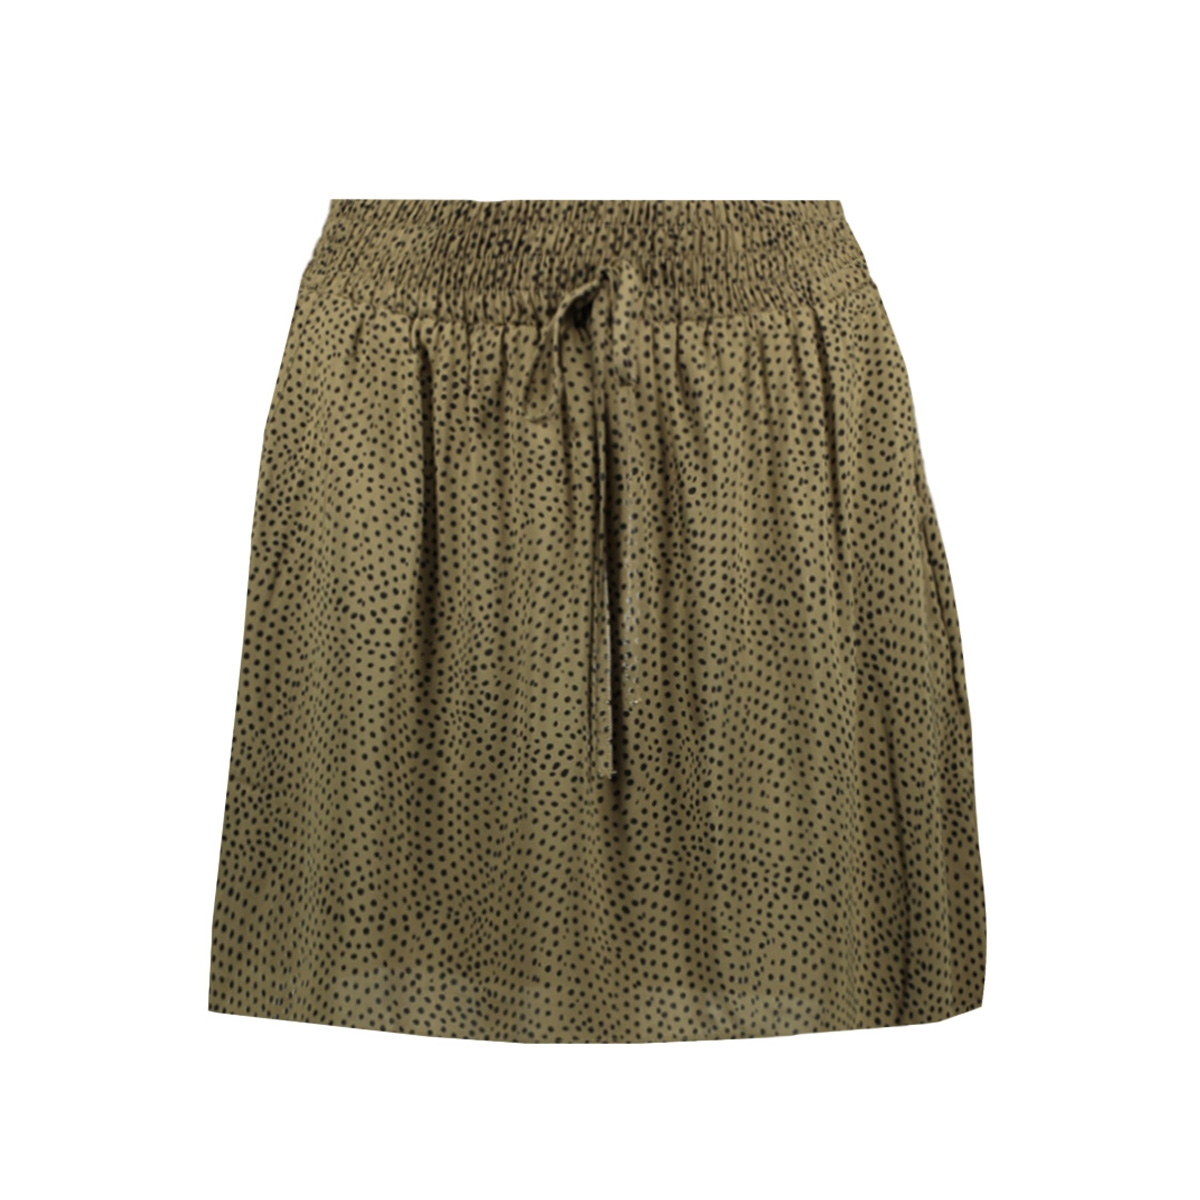 dara skirt 19 23 8218 circle of trust rok 8218 dark olive